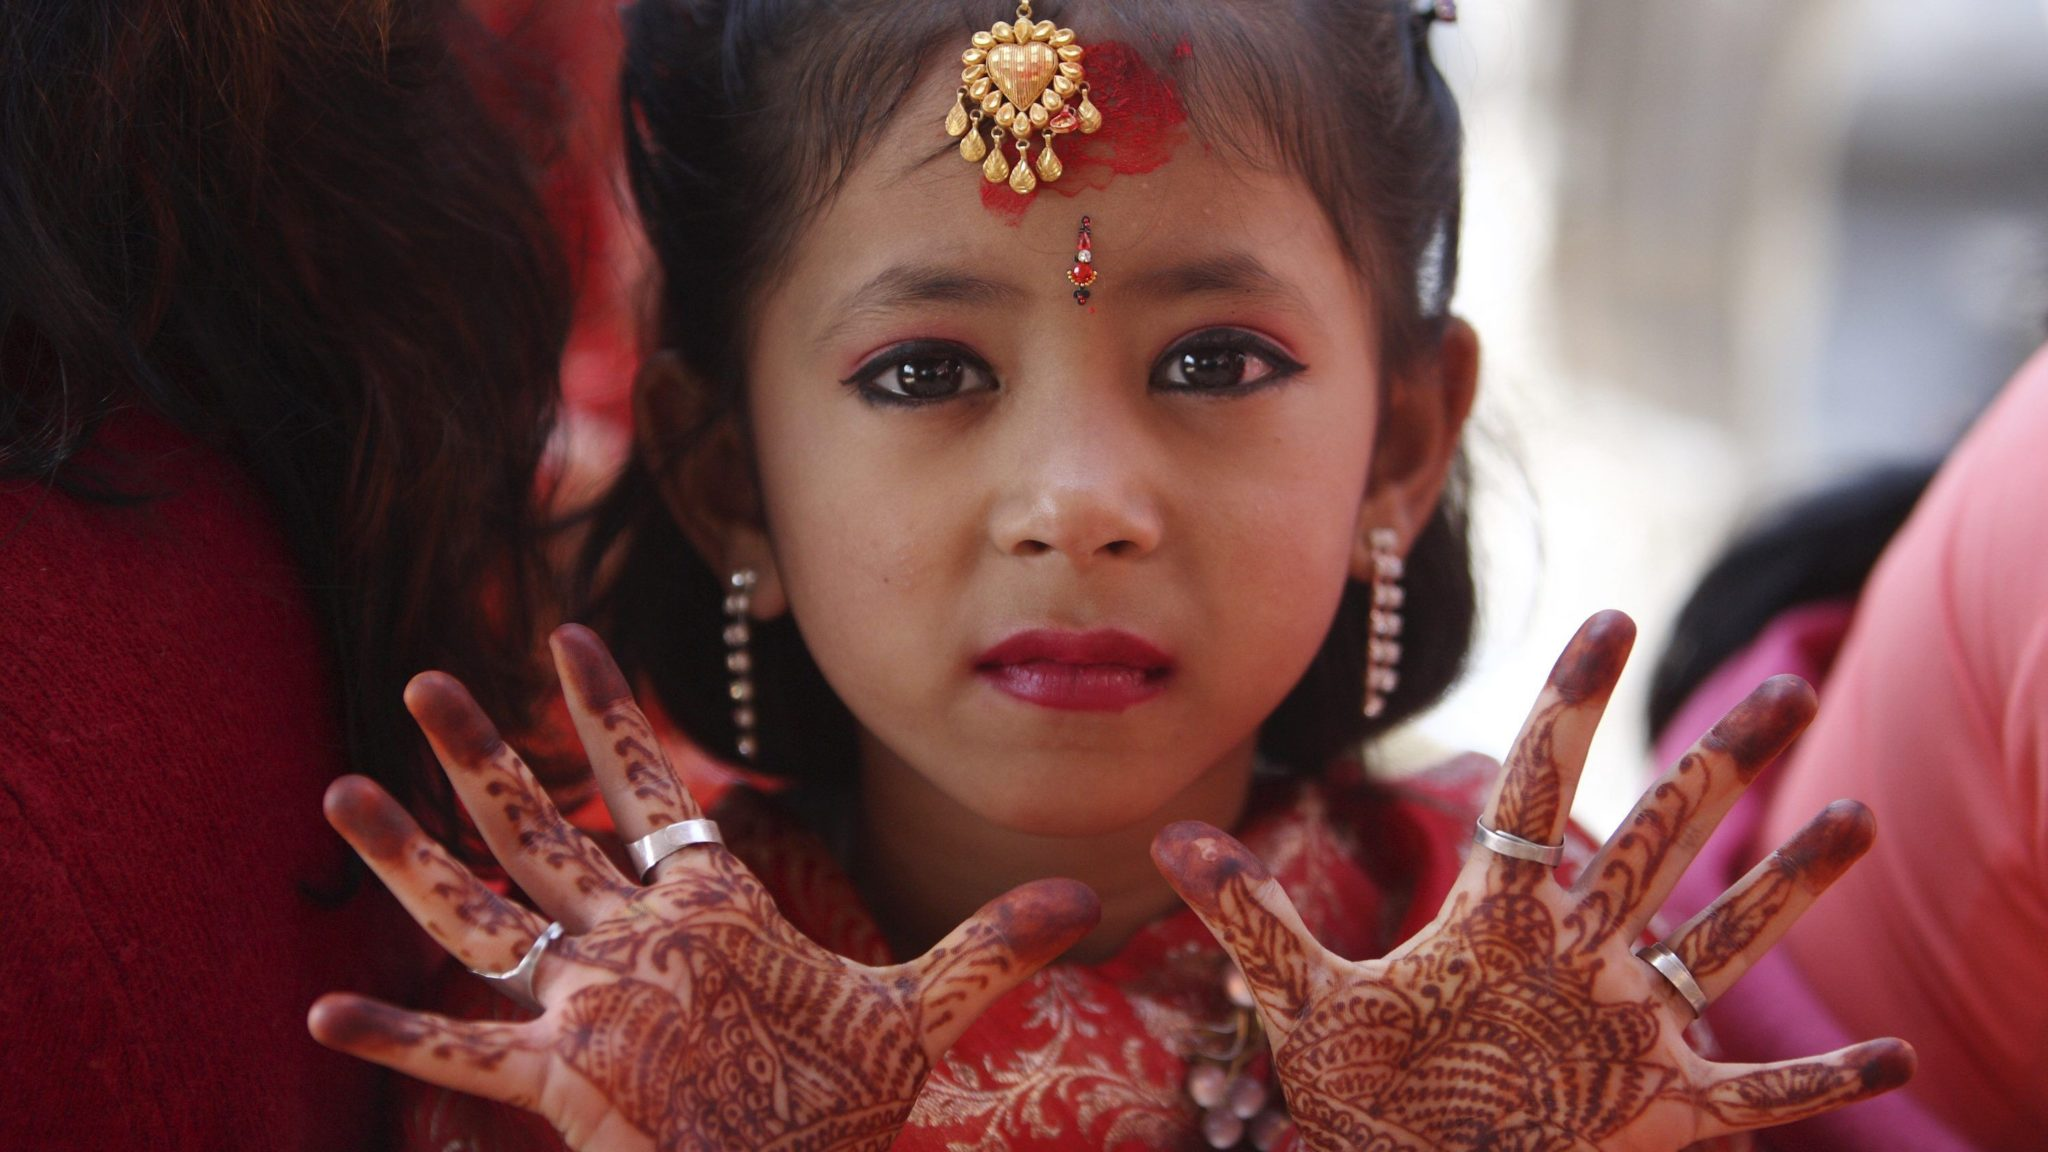 Stop Child Marriages